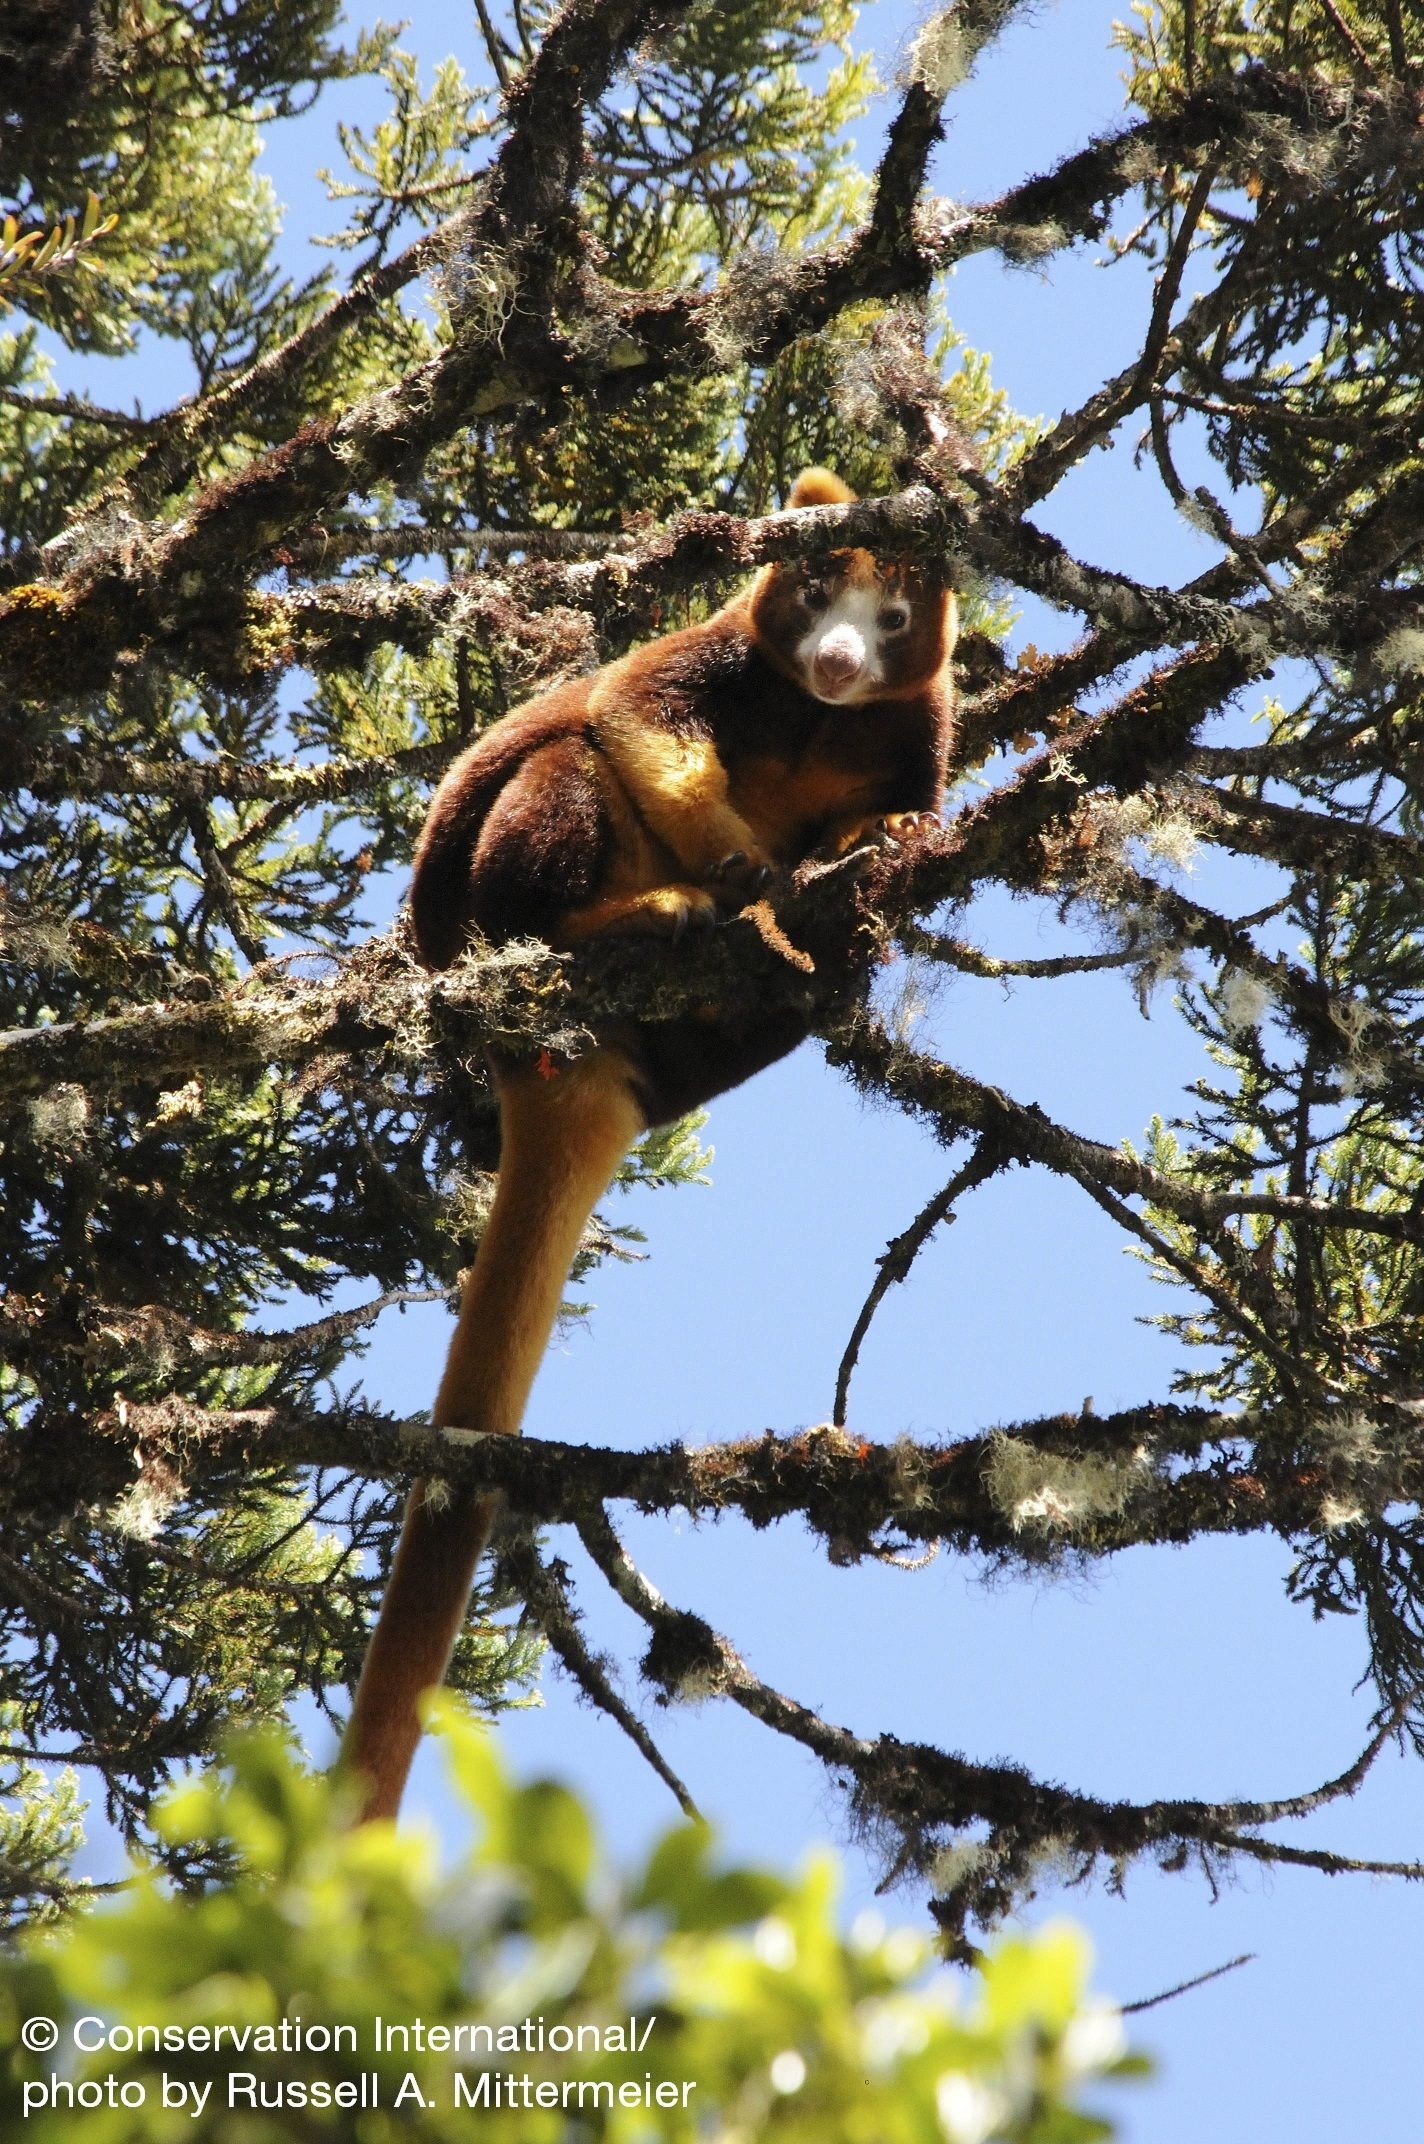 A female matschies tree kangaroo an endangered species native to a female matschies tree kangaroo an endangered species native to the huan peninsula of papua papua new guineaendangered sciox Images